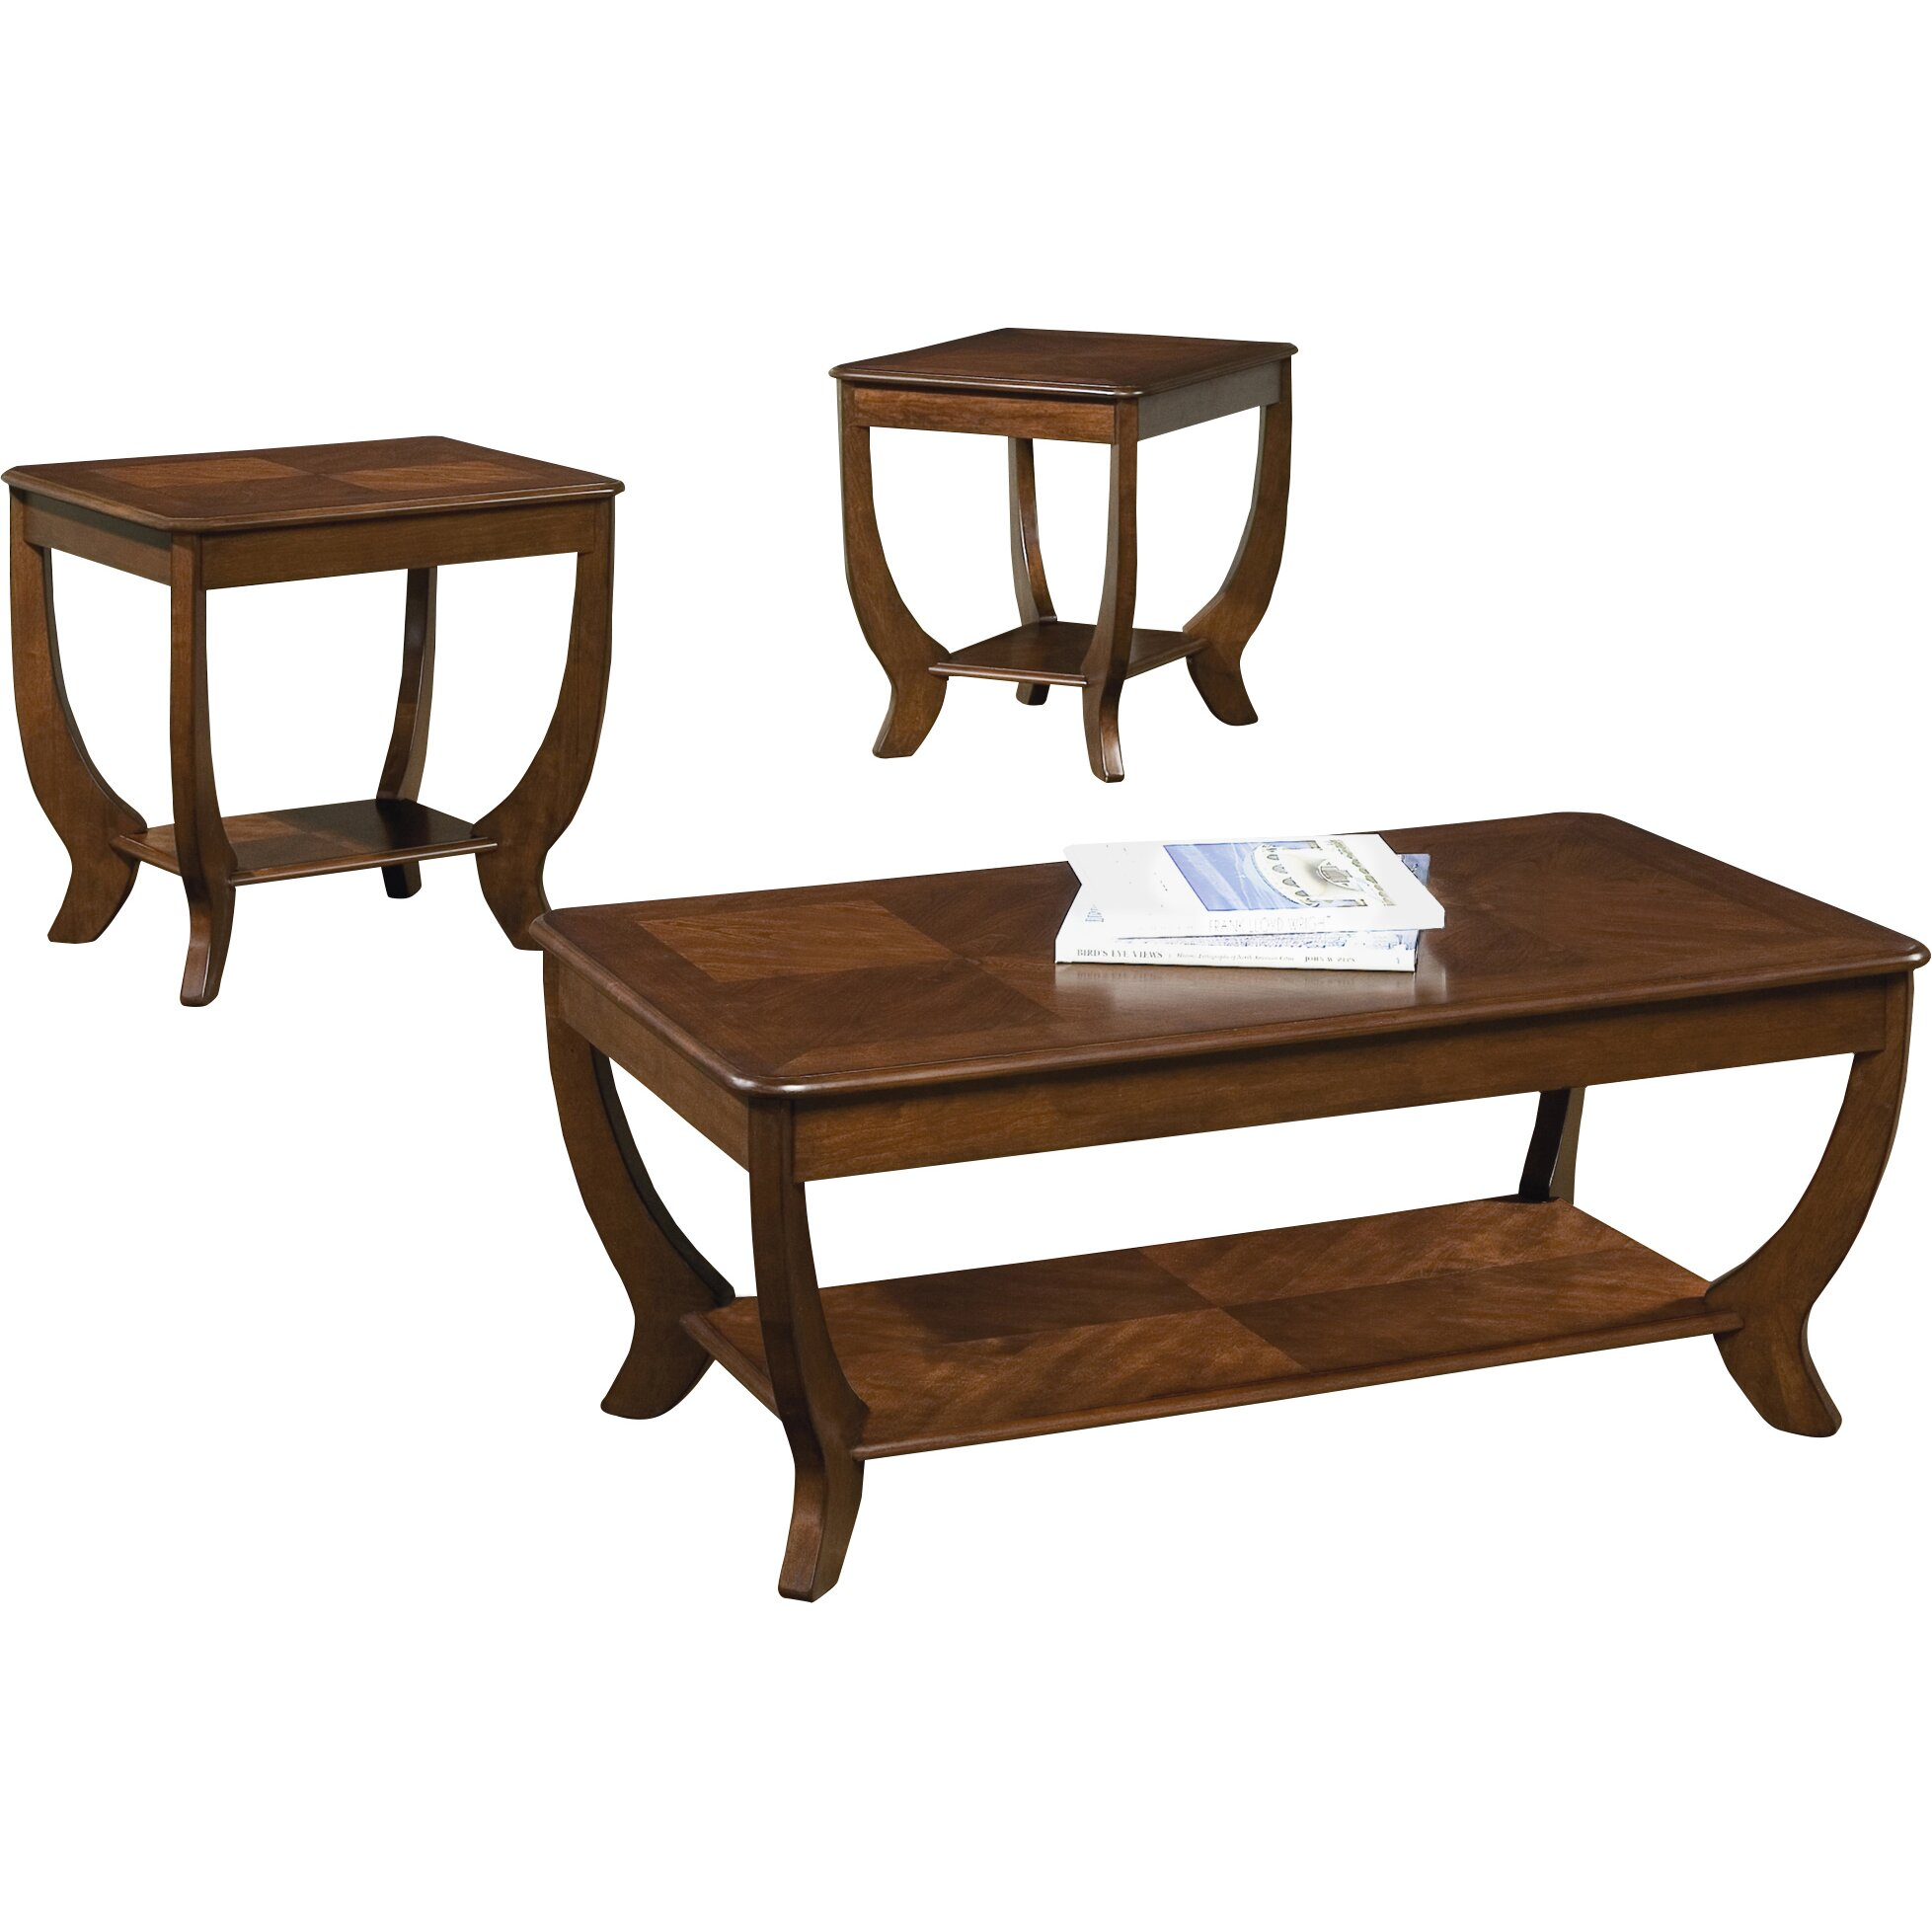 Rosalind Wheeler Pettigrew 3 Piece Coffee Table Set Reviews